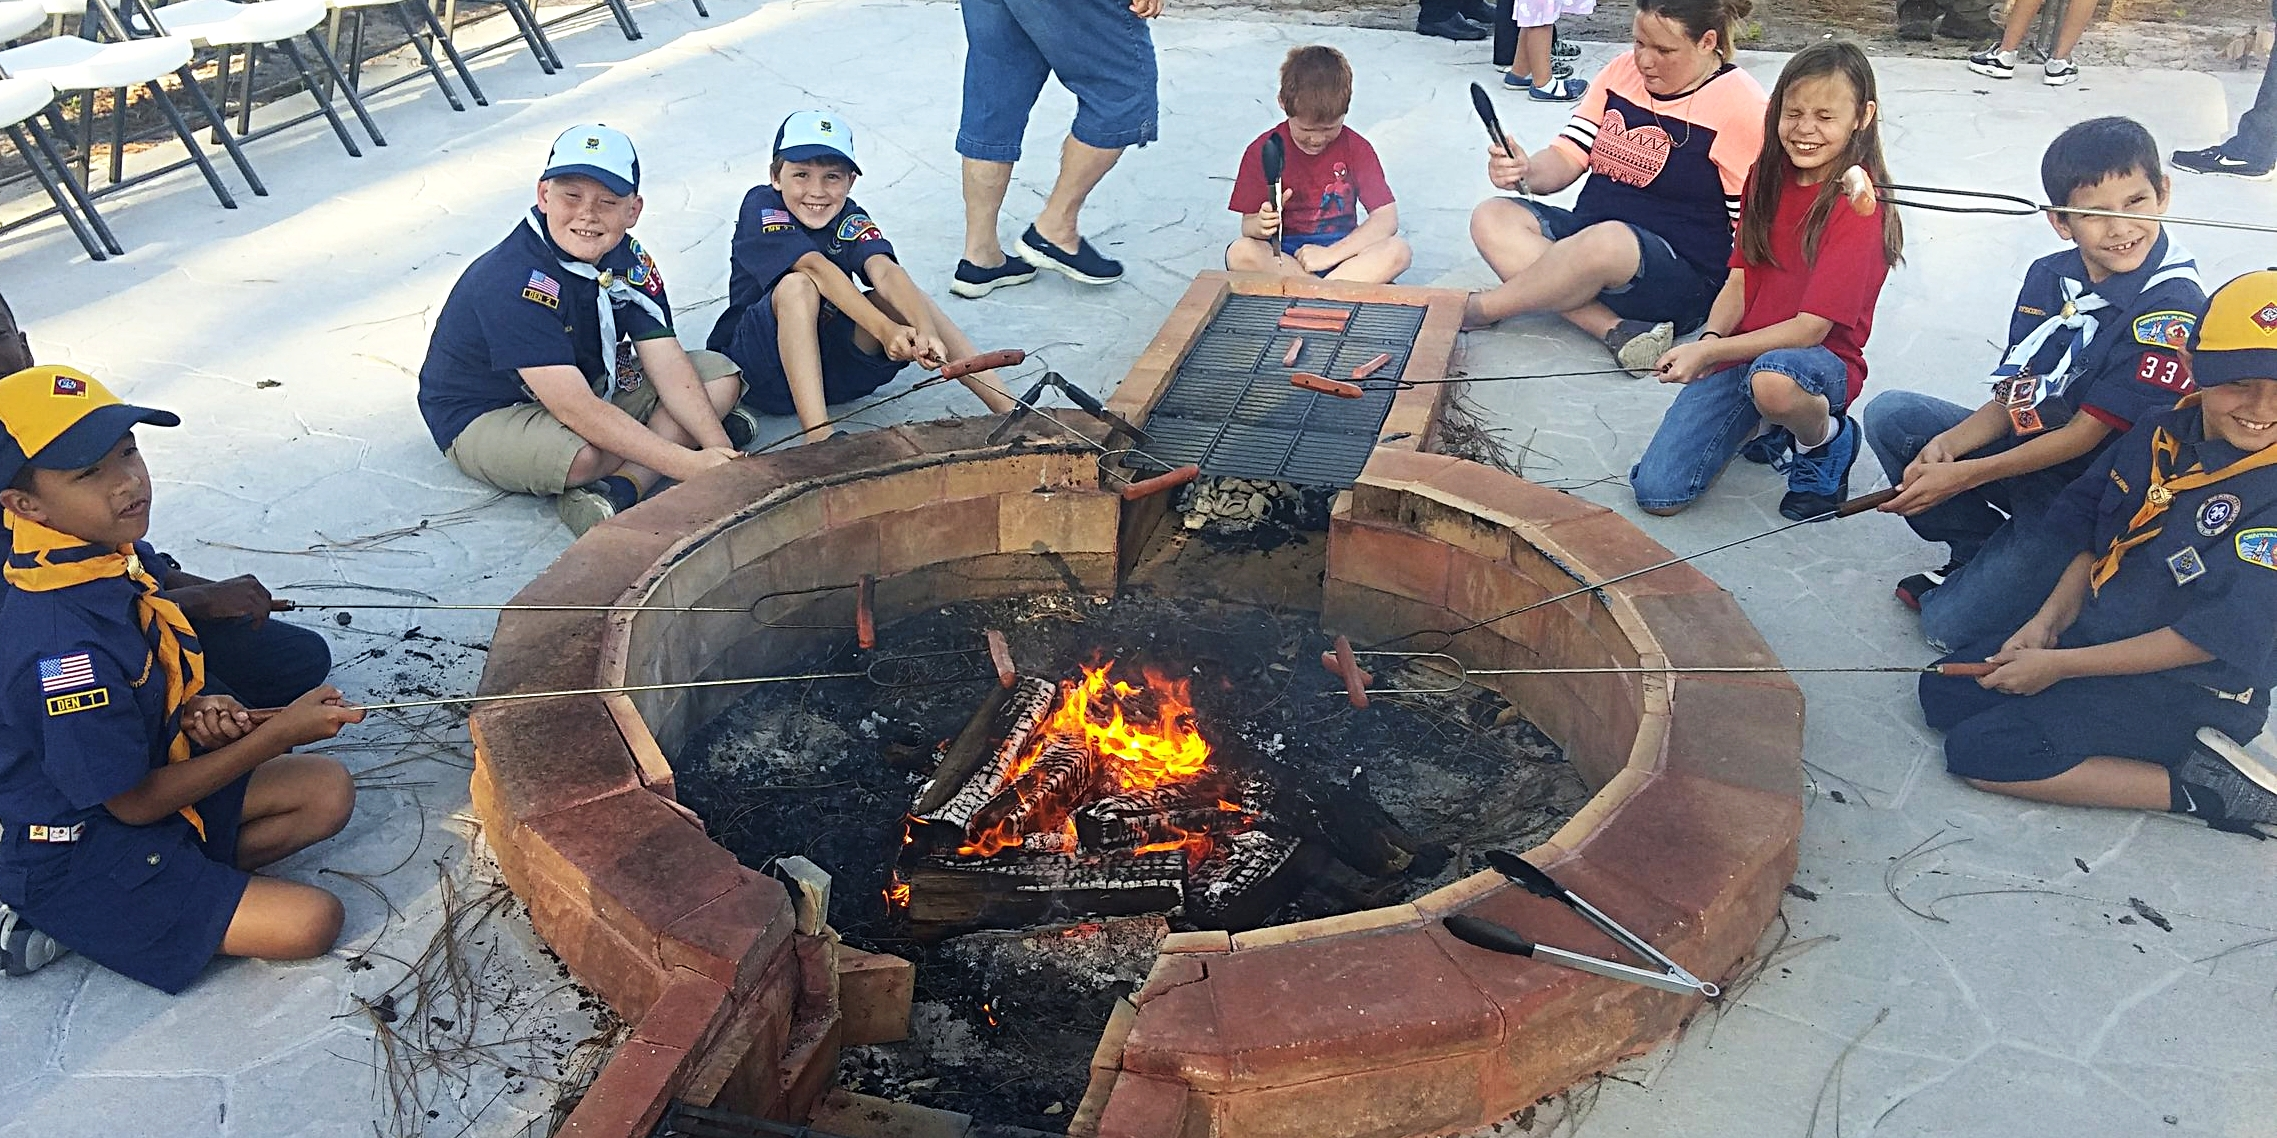 Cub  Scouts & Families from Pack 337 cooking hot dogs on the built-in grill Zachary designed and on skewers!